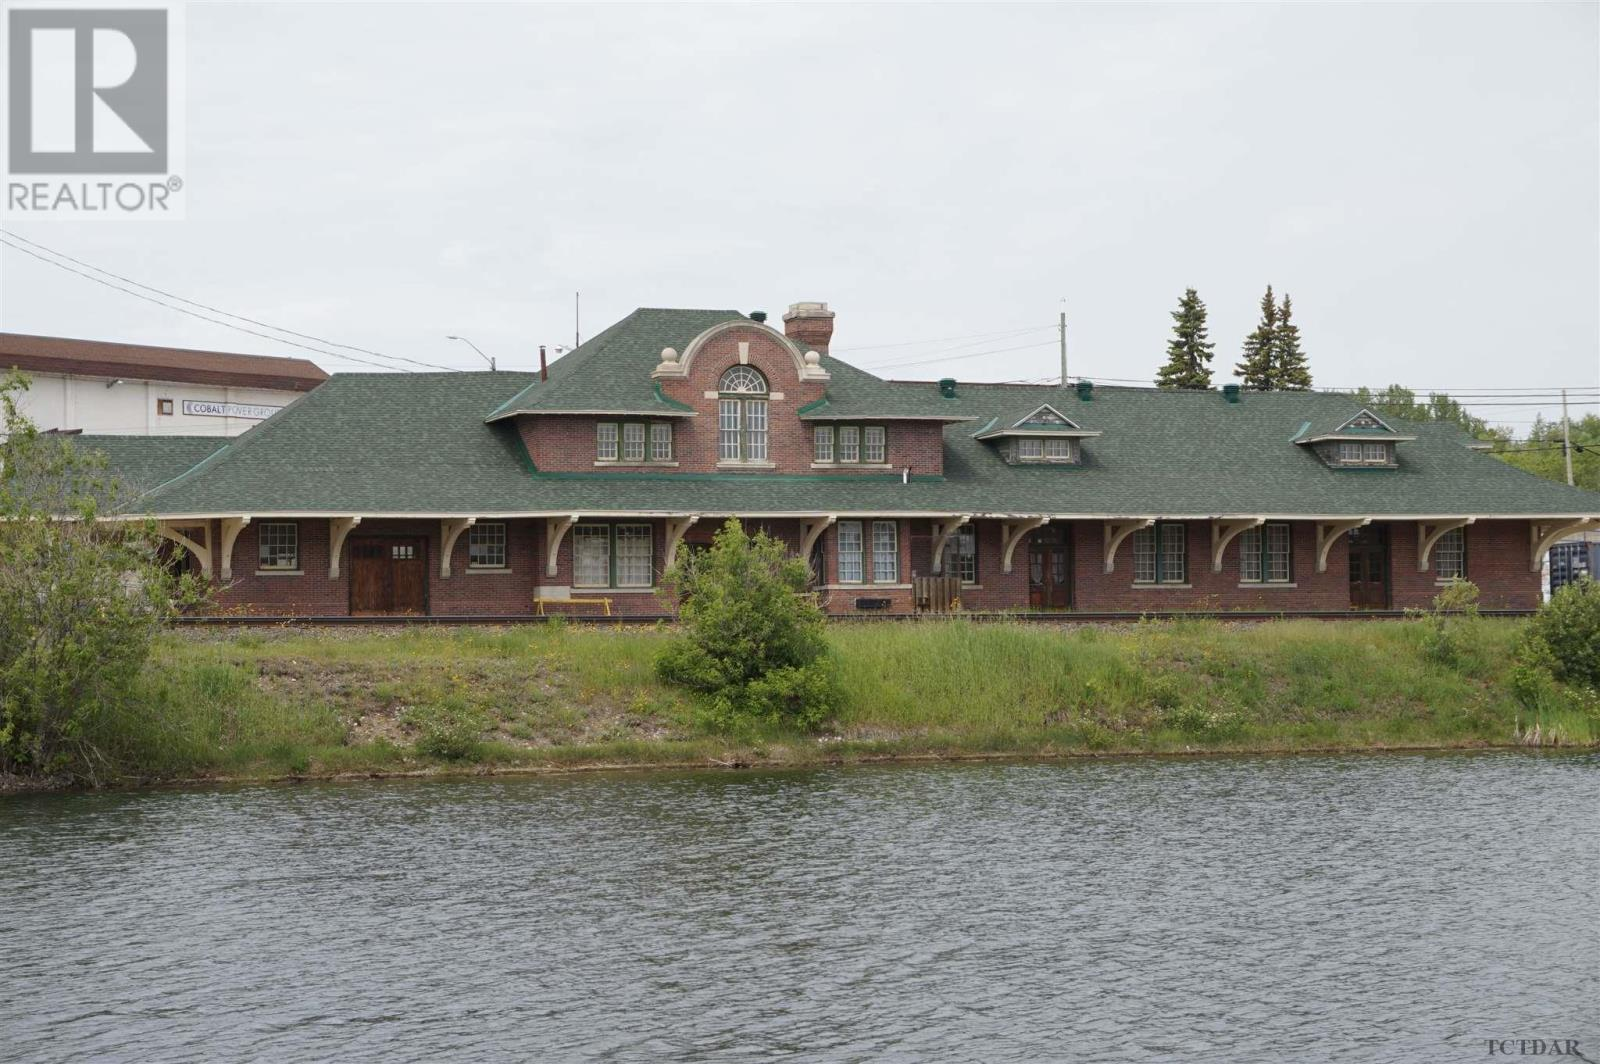 residential property for For sale at Cobalt, Ontario